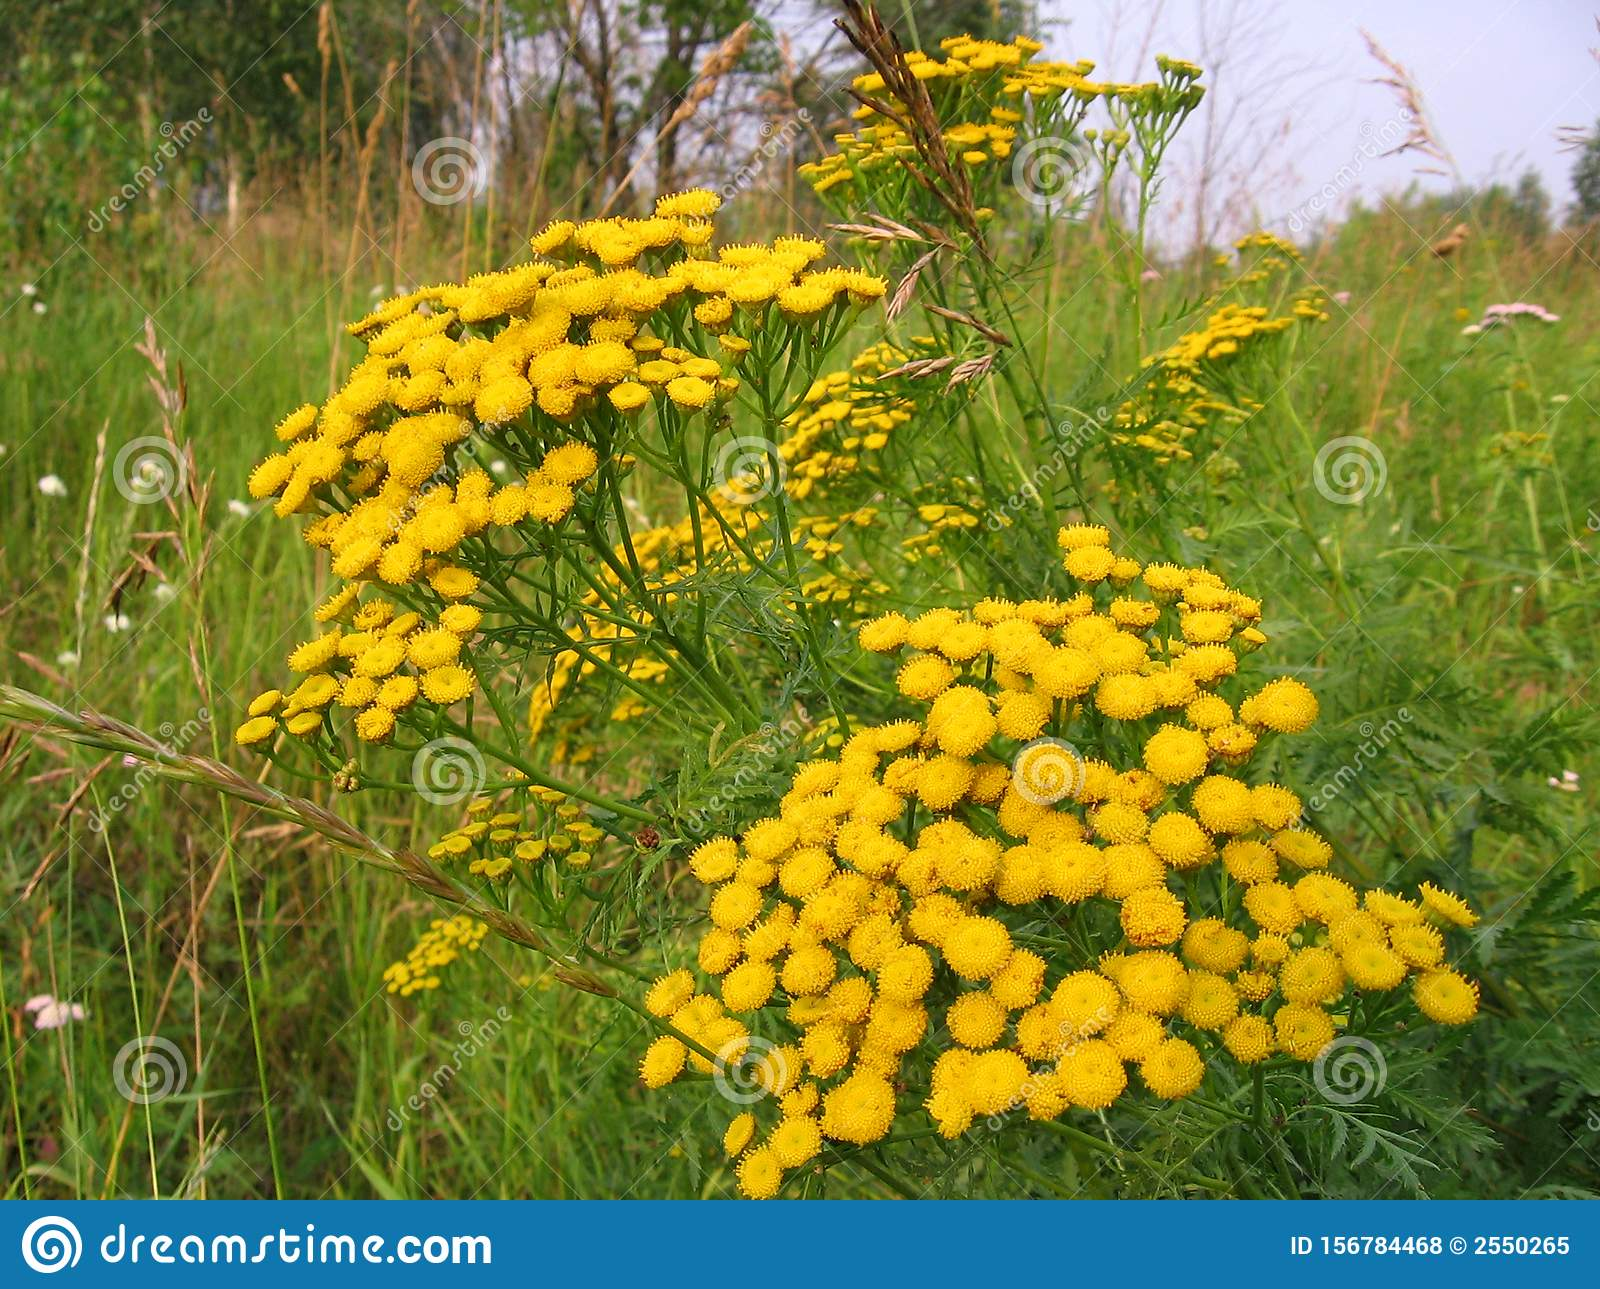 Bright yellow wildflowers tansy grow in the field in the summer in the grass